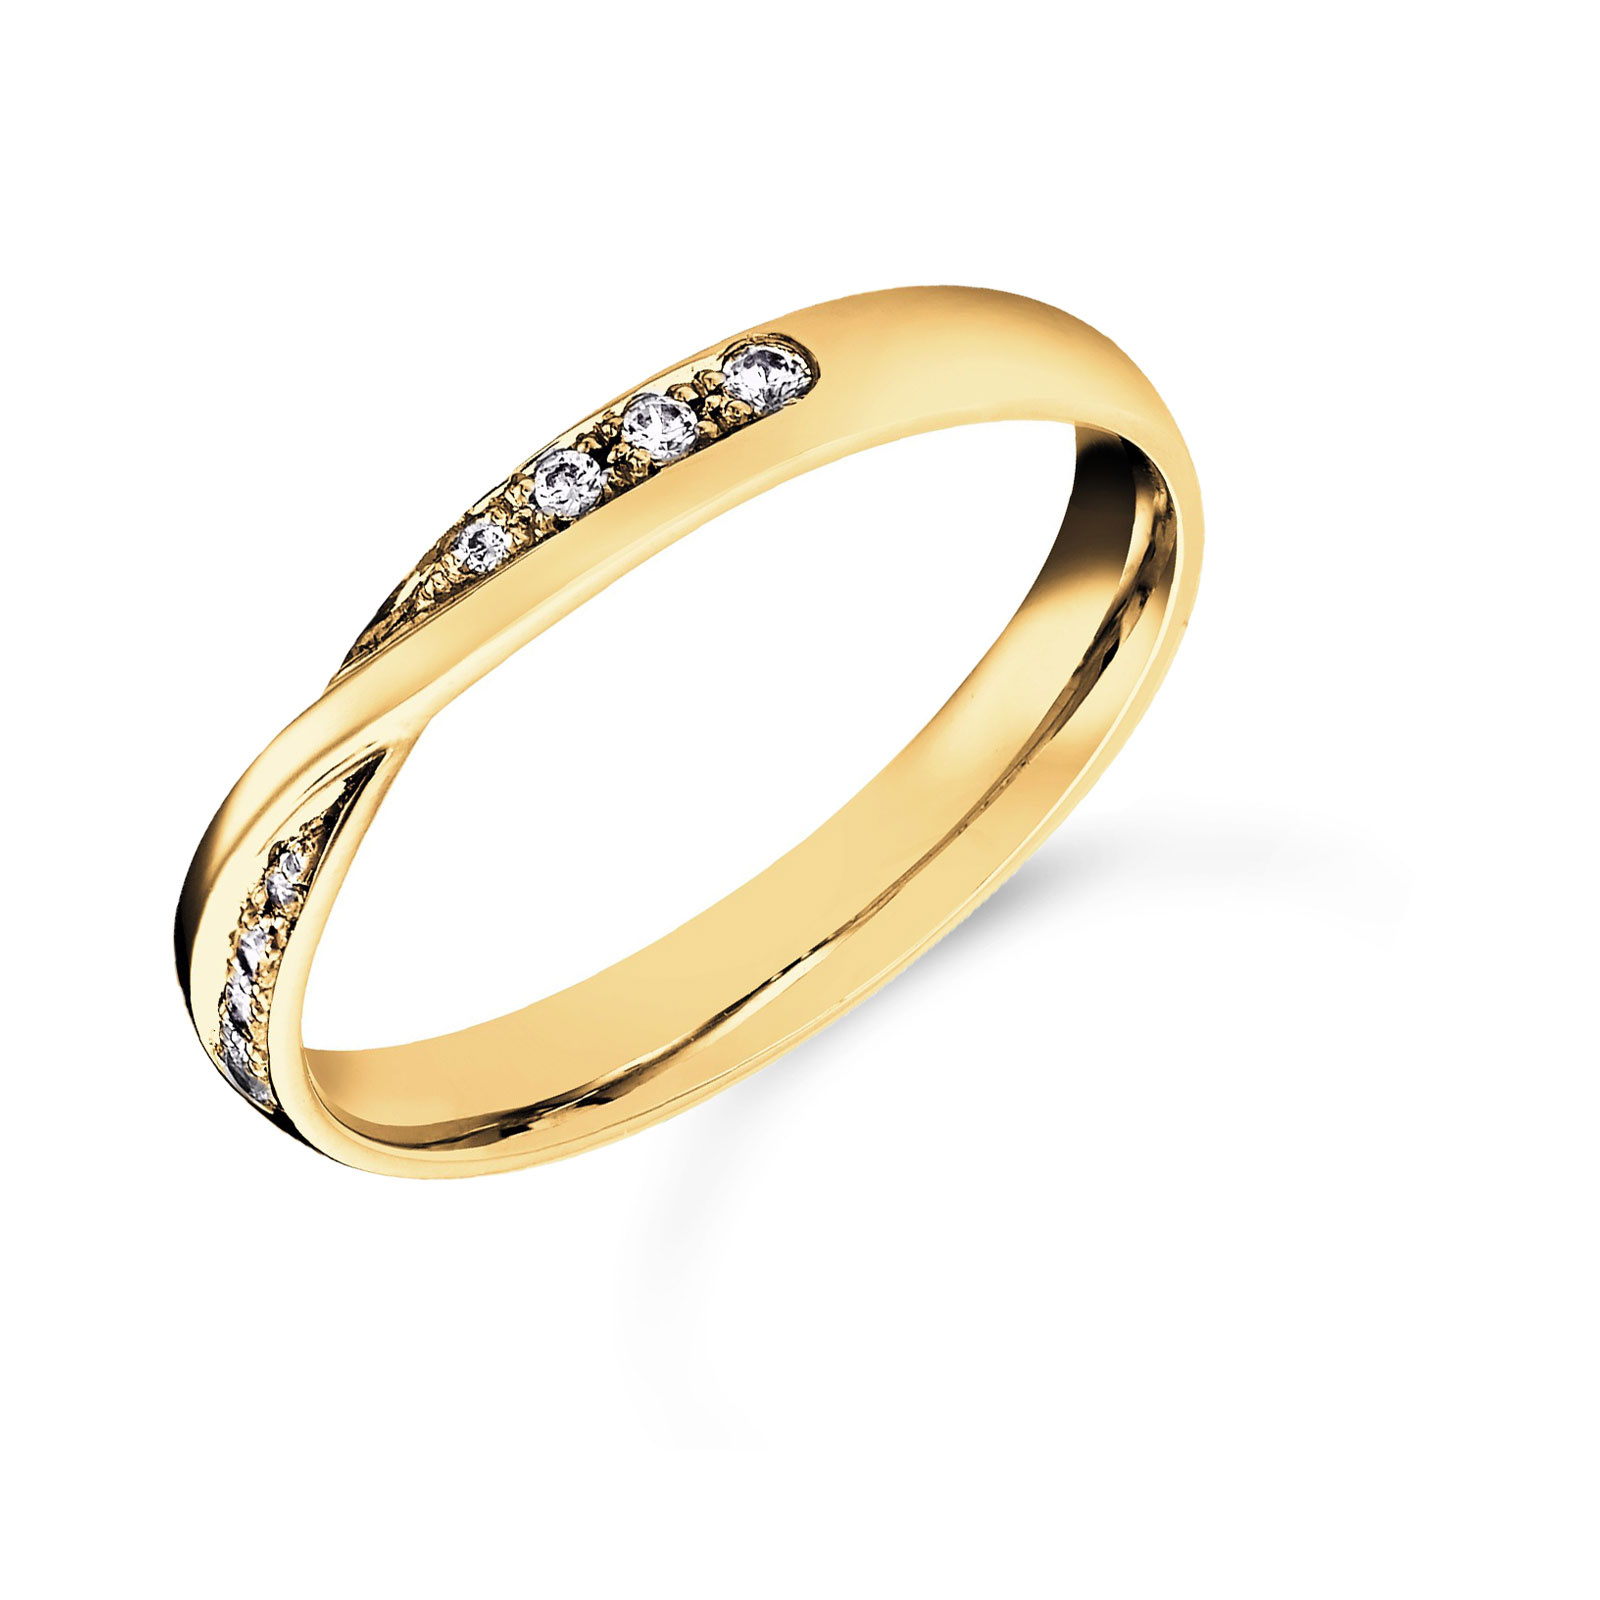 18ct Yellow Gold 0.07cttw Diamond Twist Wedding Ring